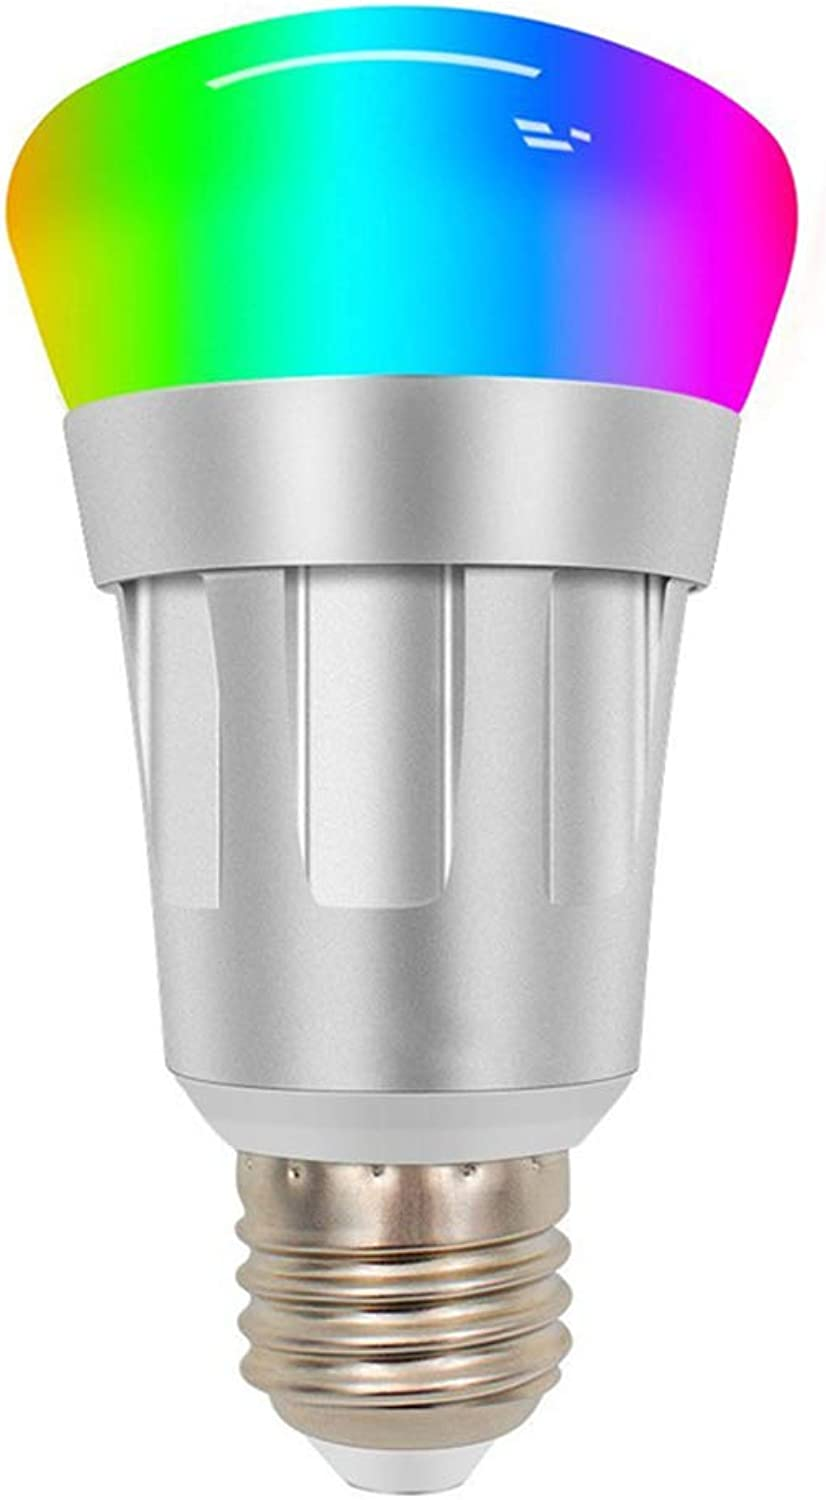 WiFi Smart Bulb, B22 Bayonet 11W Smart Led Bulb Compatible with Alexa, Google Home, Dimmable RGB Smart Light Bulb, No Hub Required, 60W Equivalent Remote Controlled by Smart Device